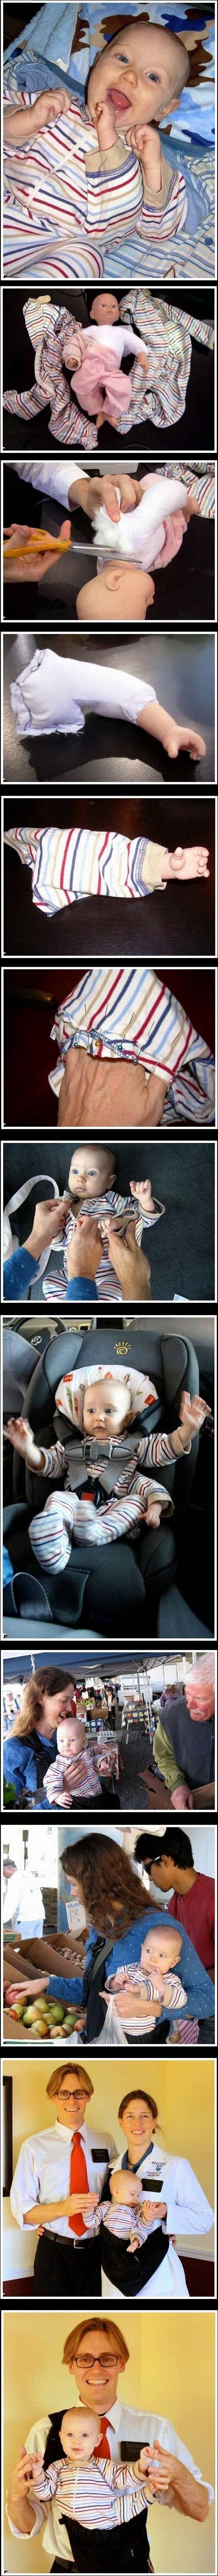 The three handed babby. Creepy as ... But why?